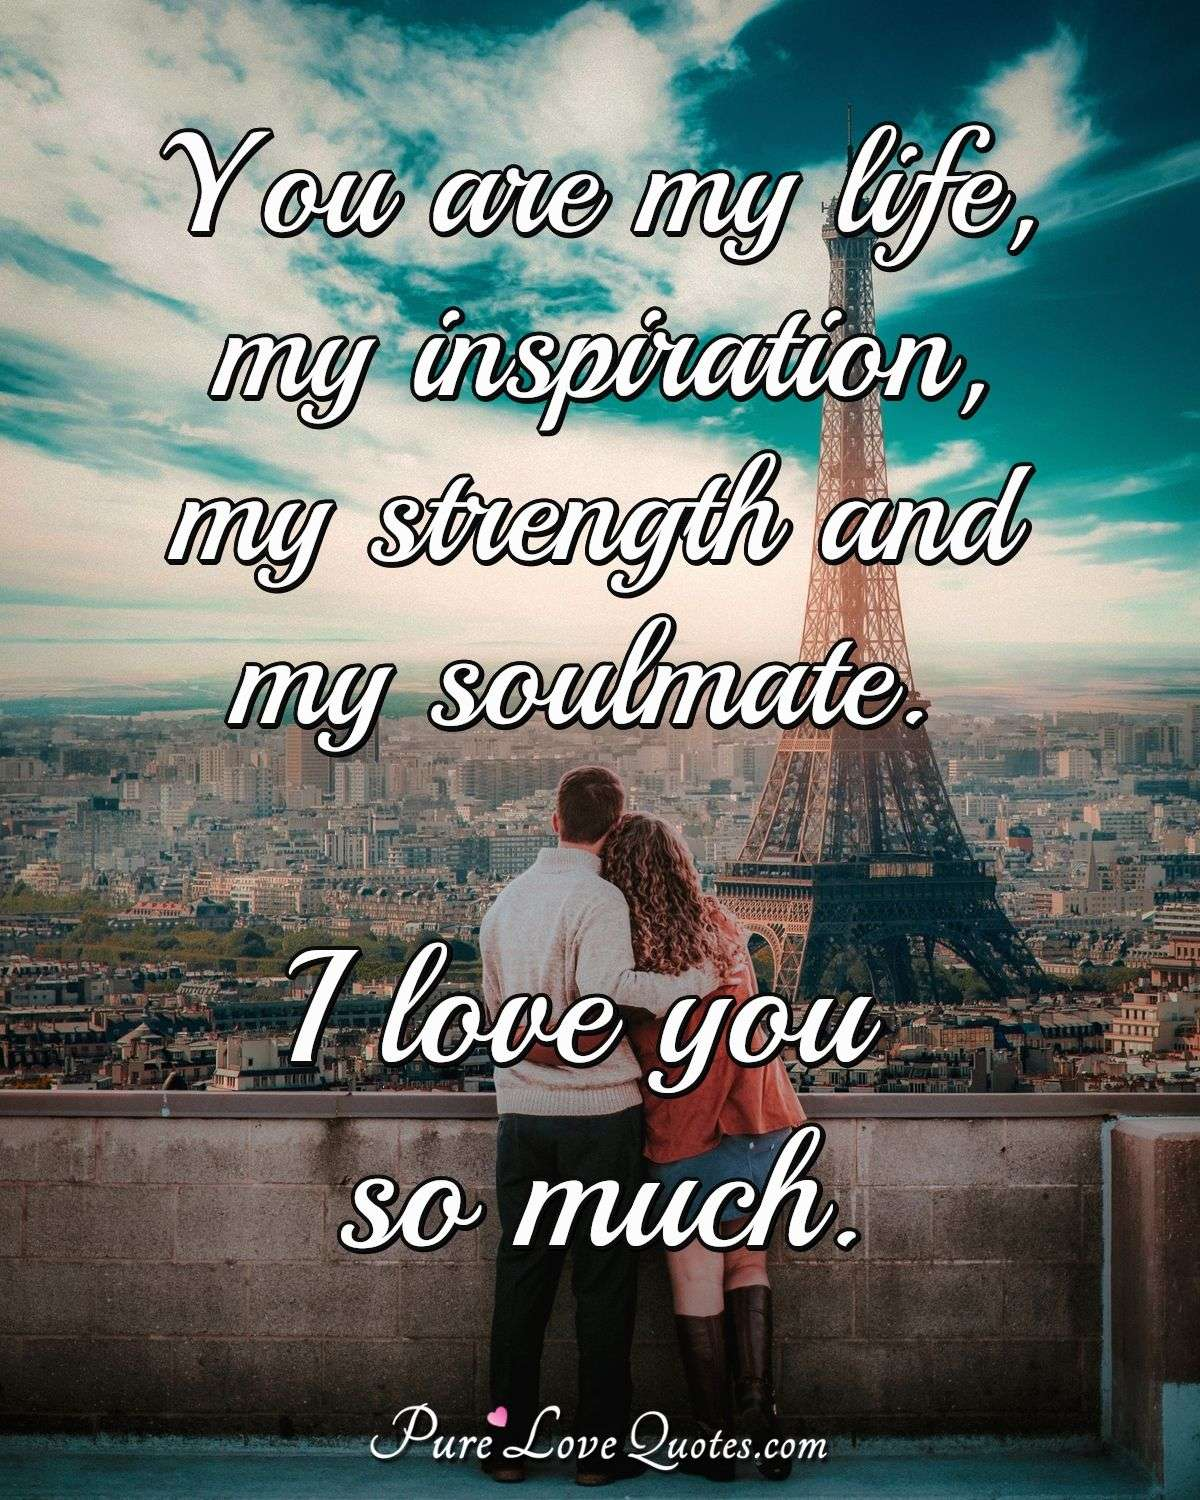 You are my life, my inspiration, my strength and my soulmate. I